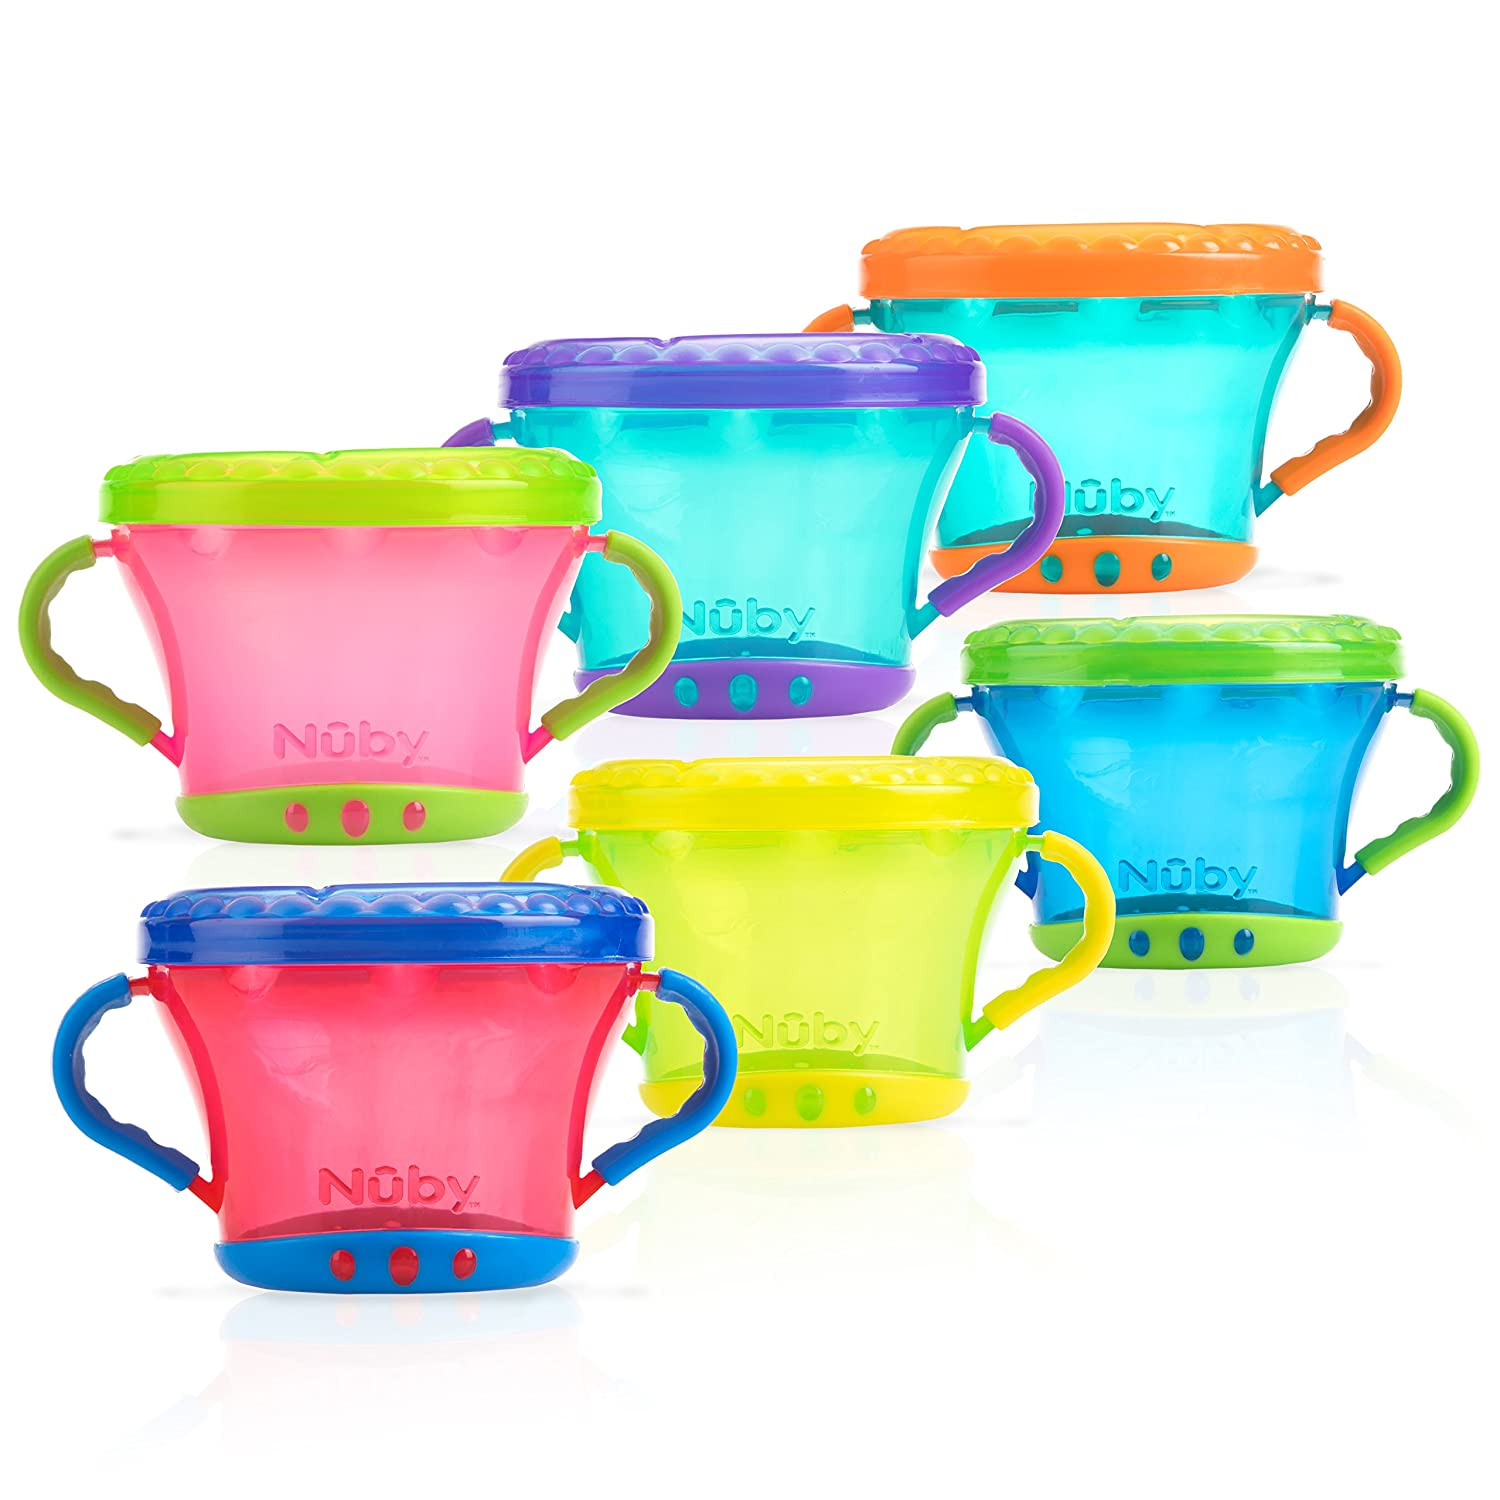 Nuby ID5409 Grip Snack Pot NÛBY